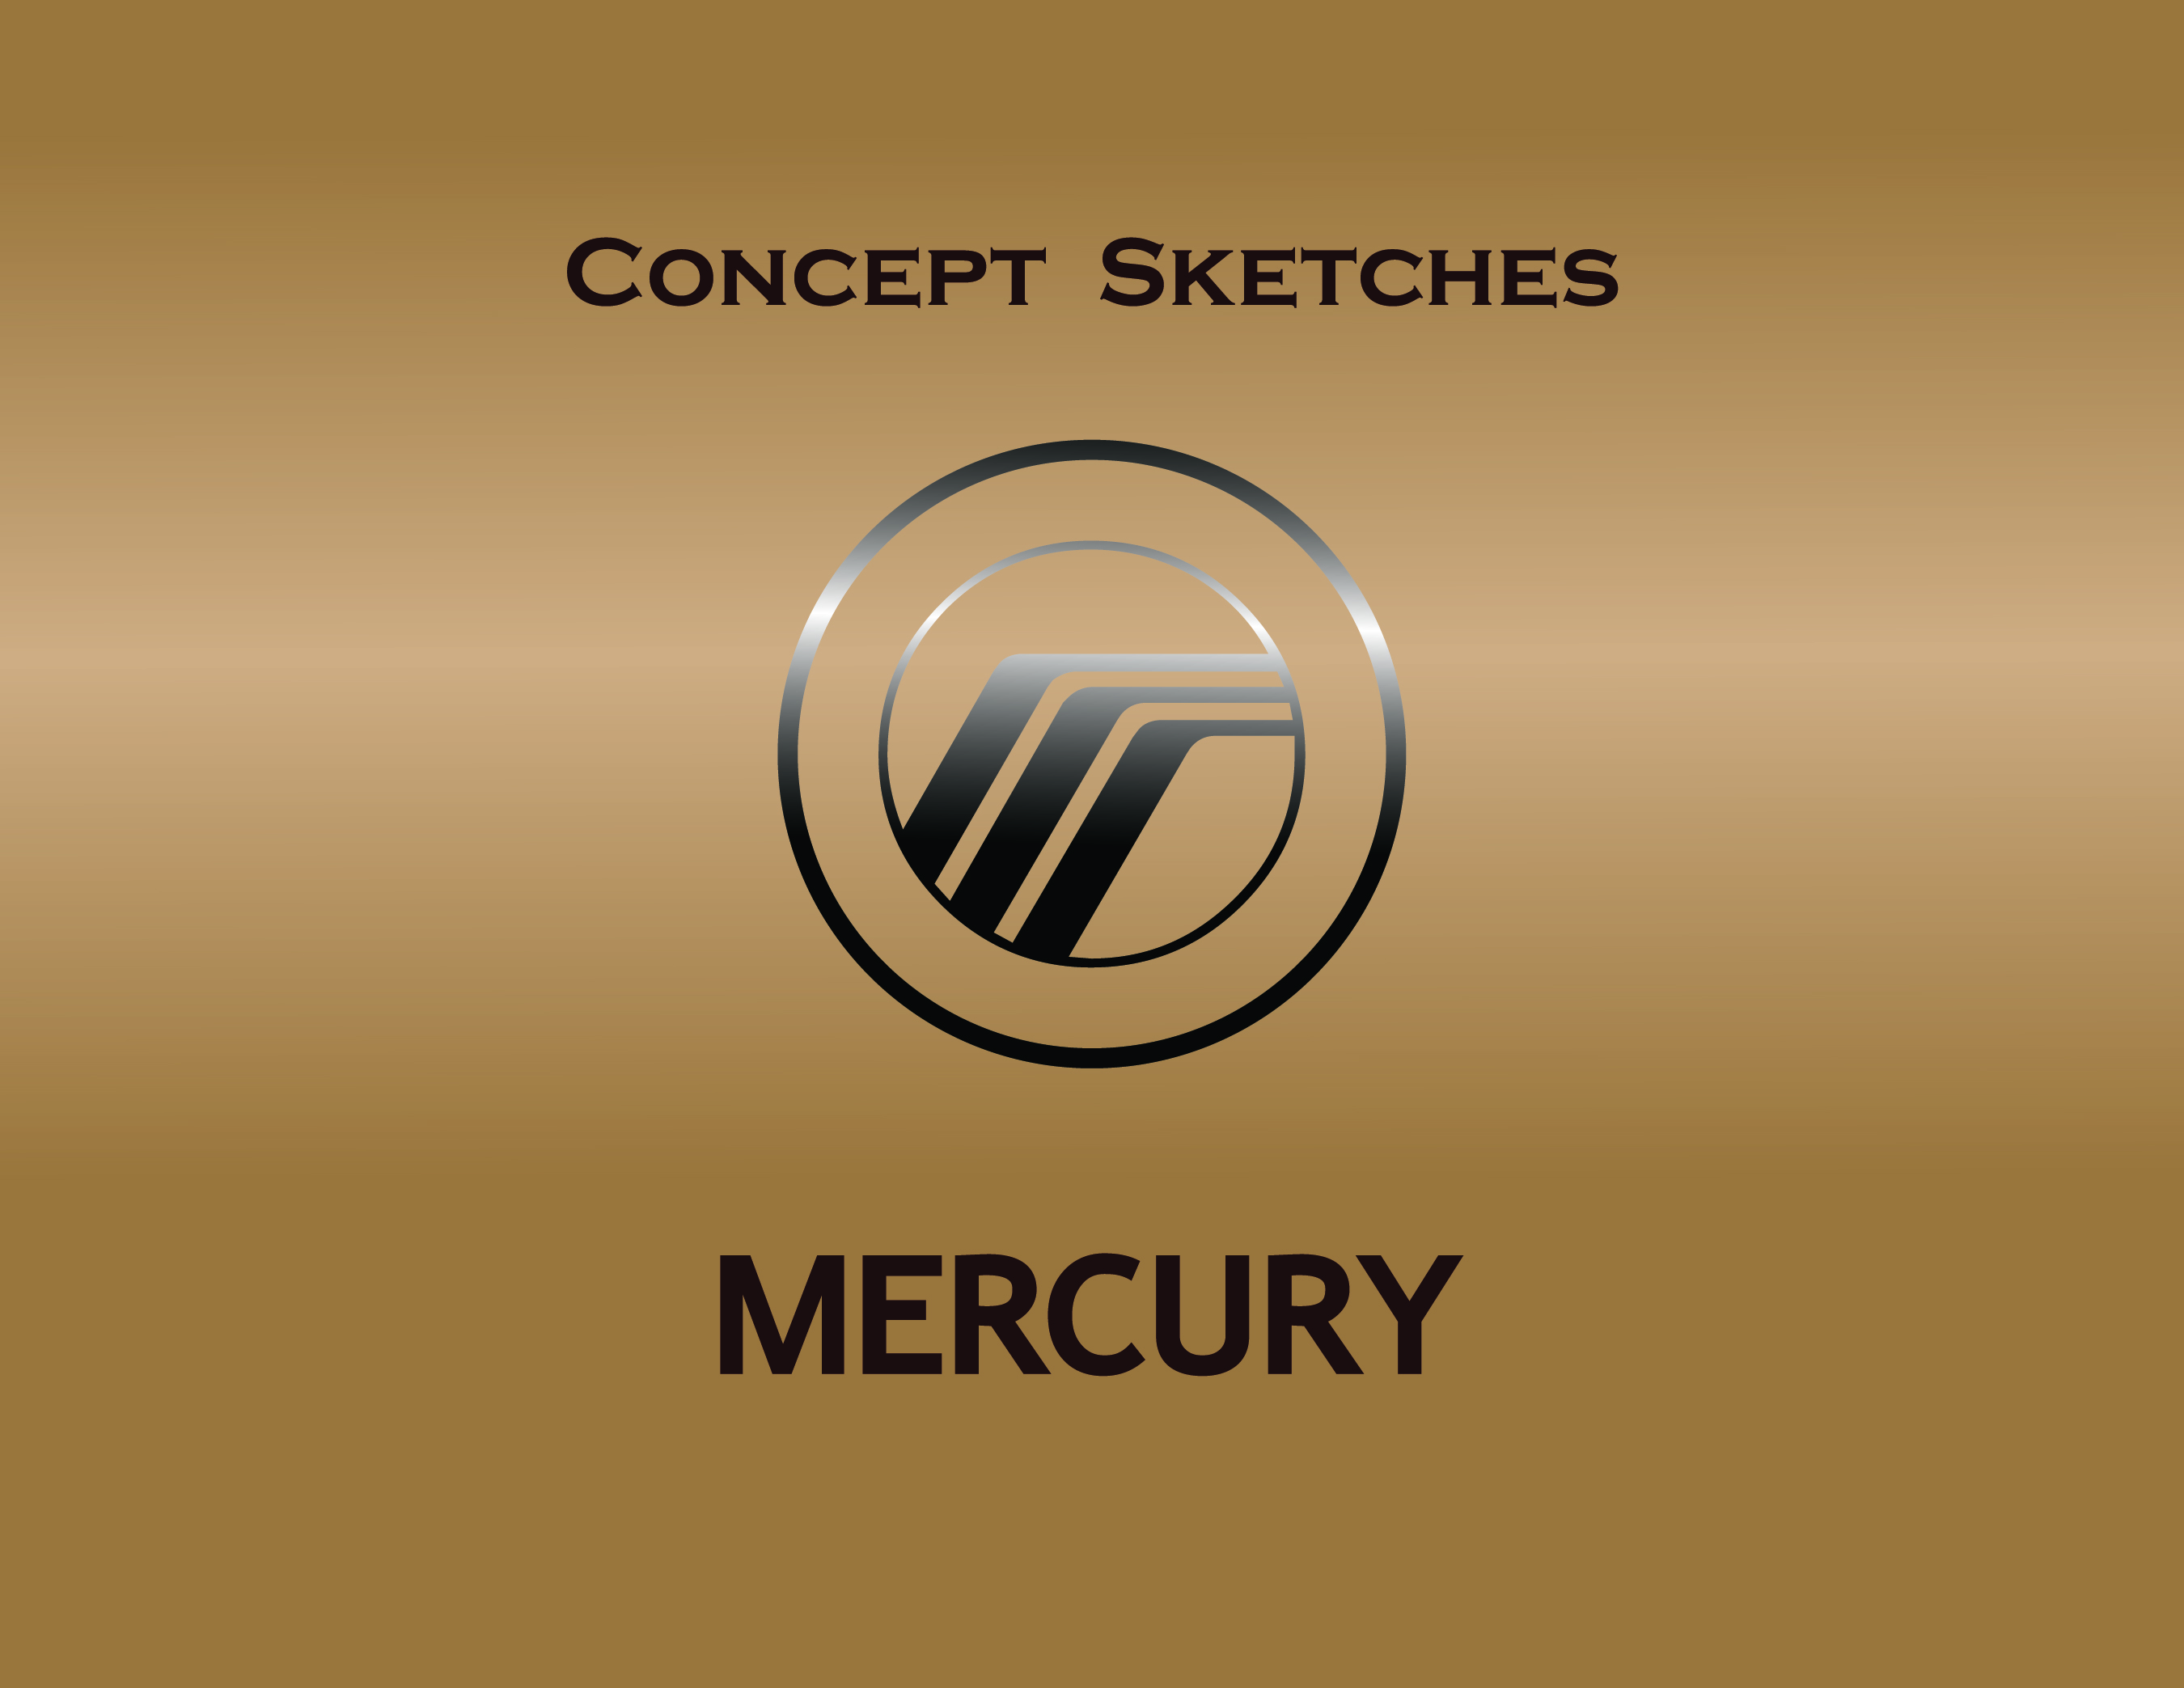 Mercury Concept Sketches